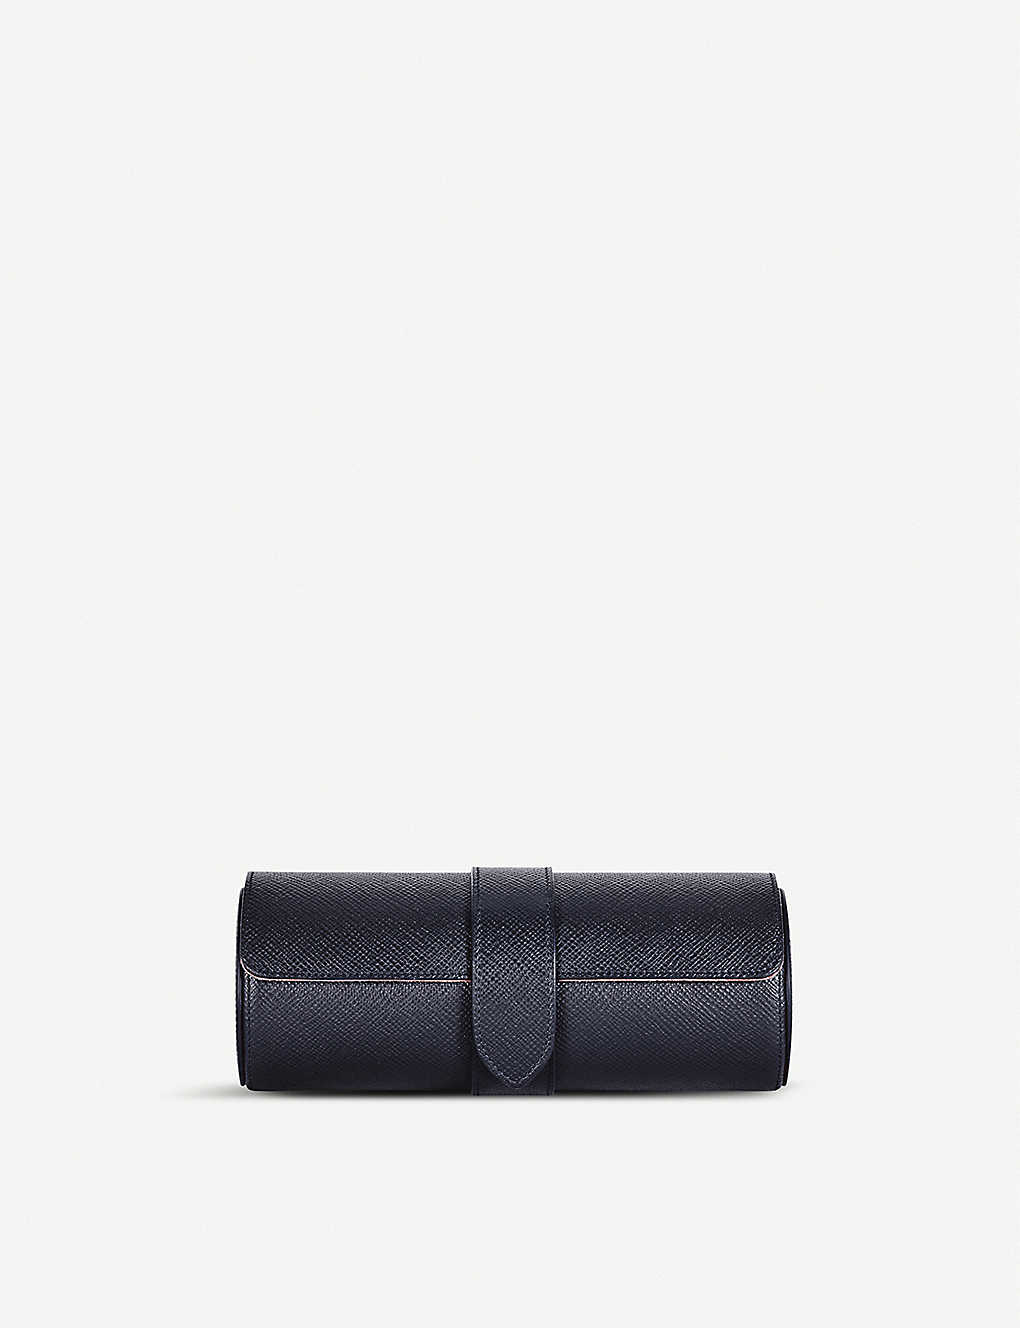 SMYTHSON: Panama grained-leather travel watch roll